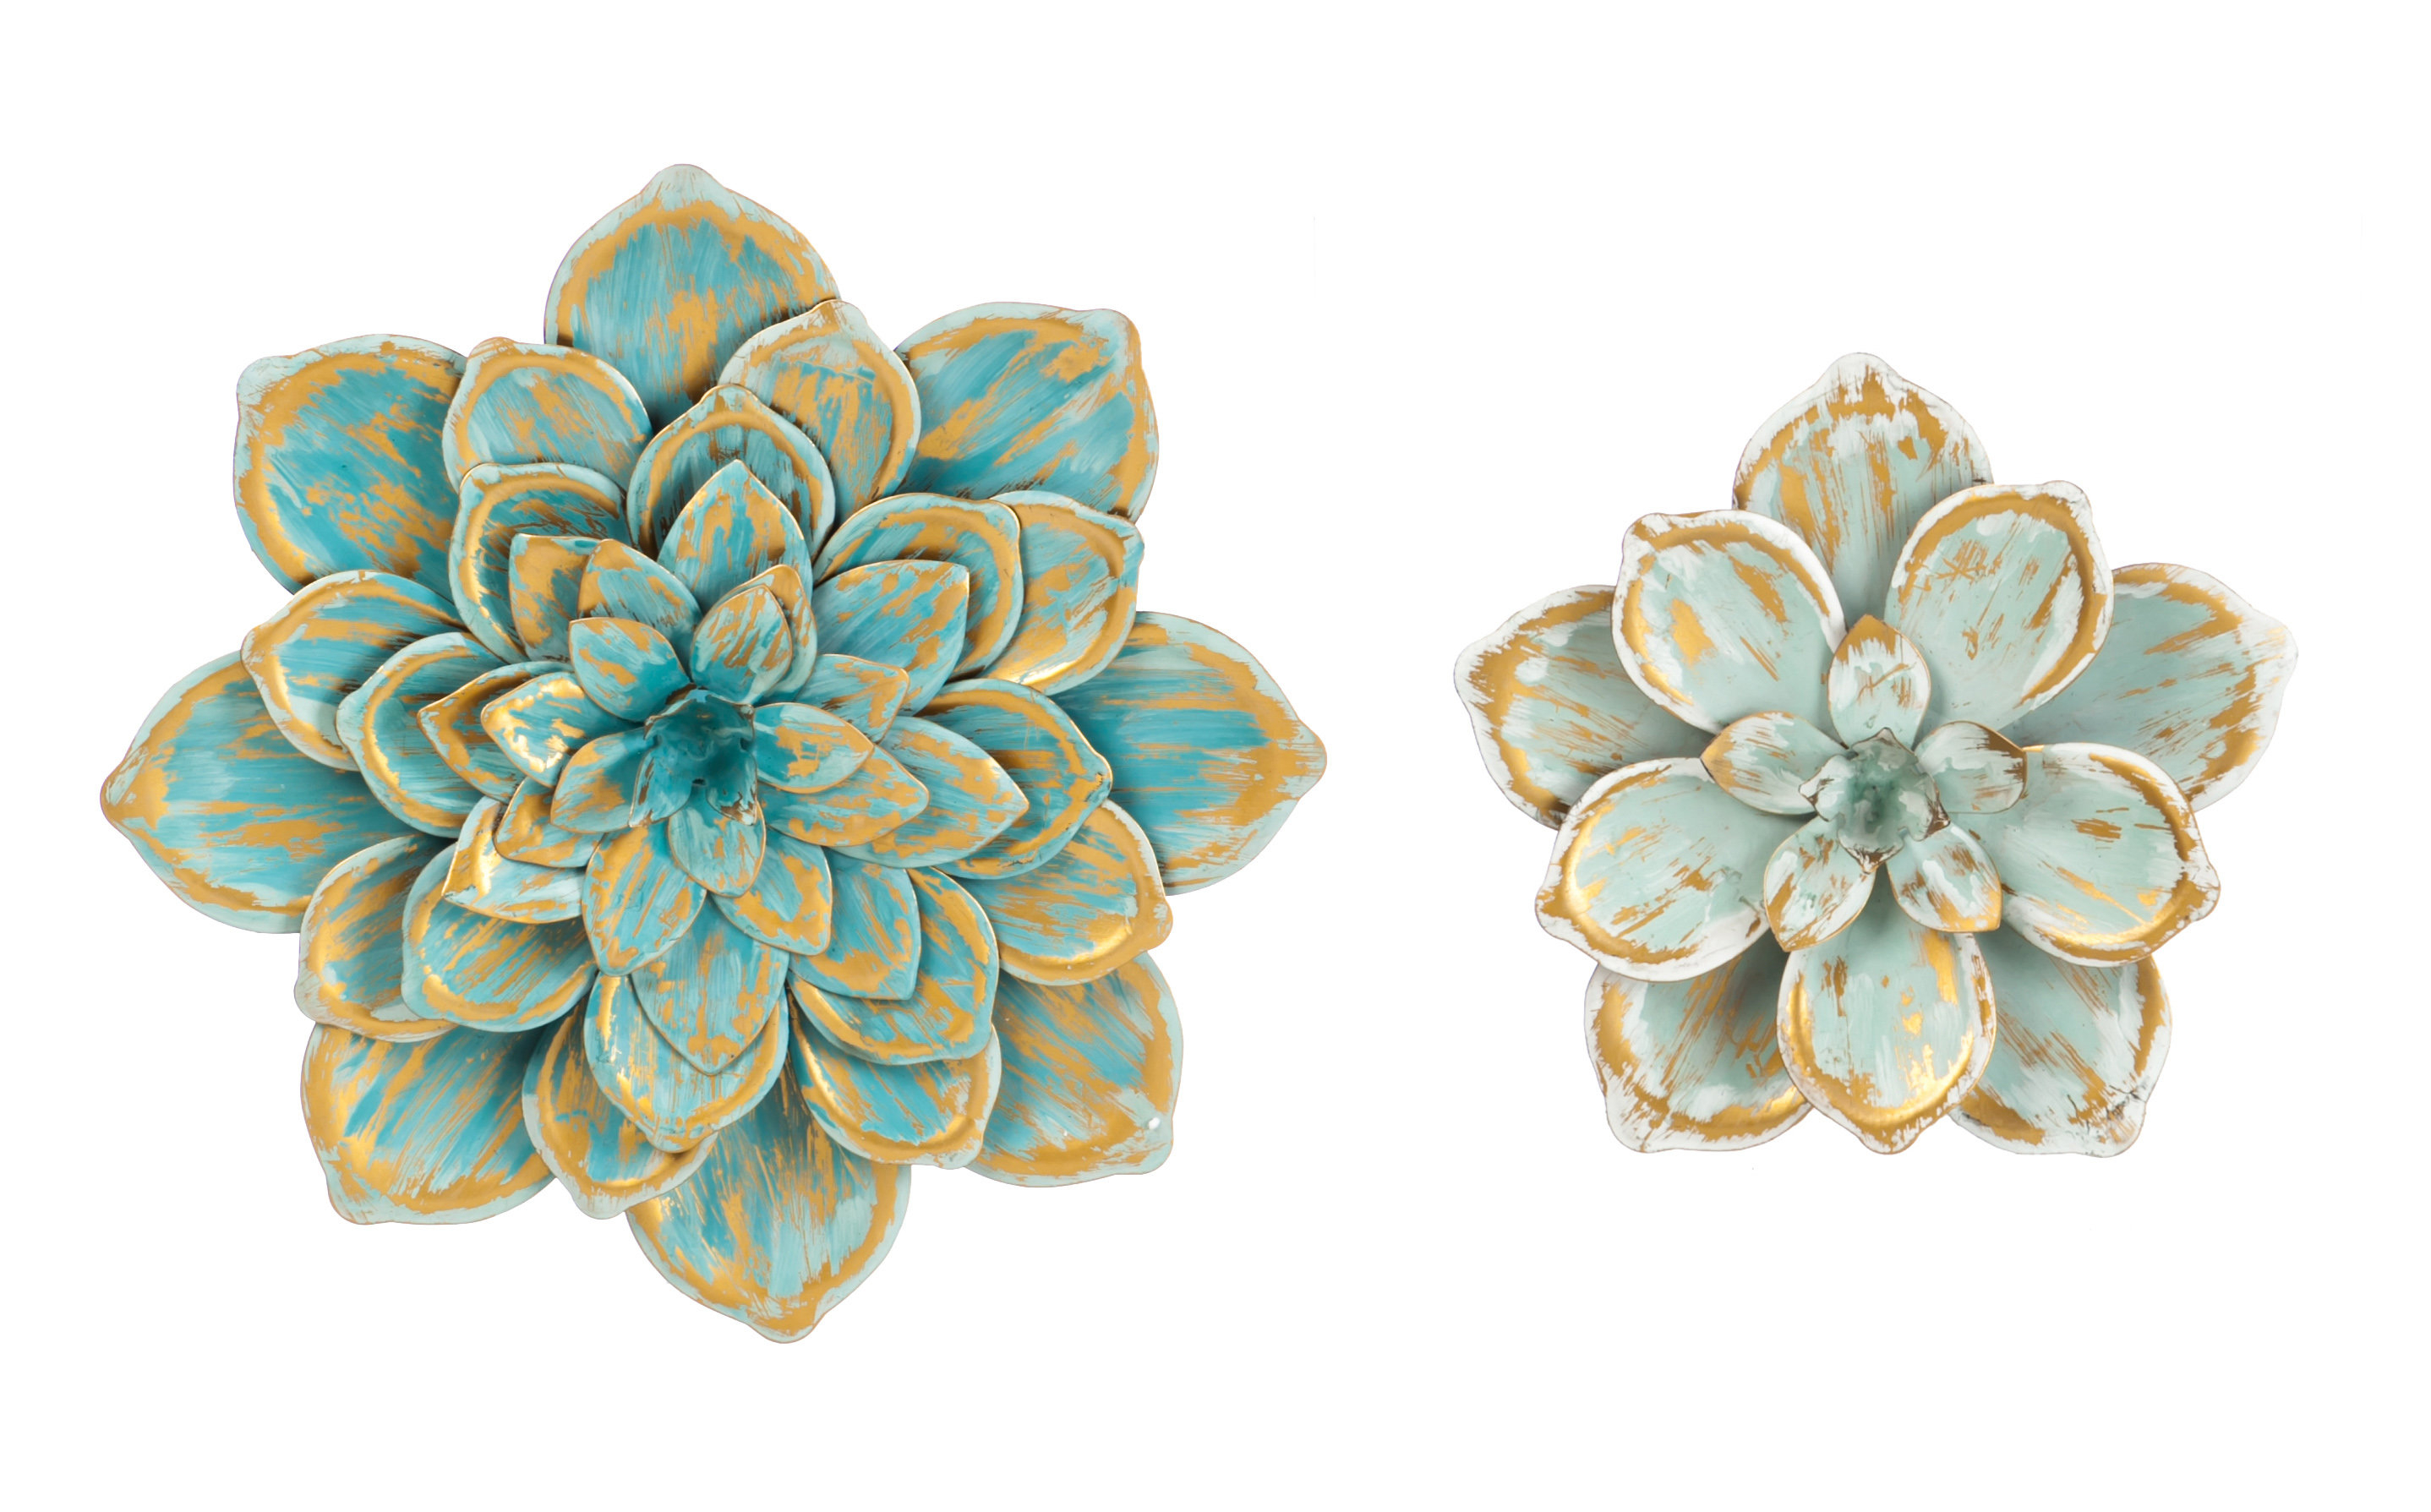 2 Piece Multiple Layer Metal Flower Wall Décor Set In 2 Piece Multiple Layer Metal Flower Wall Decor Sets (Photo 1 of 30)